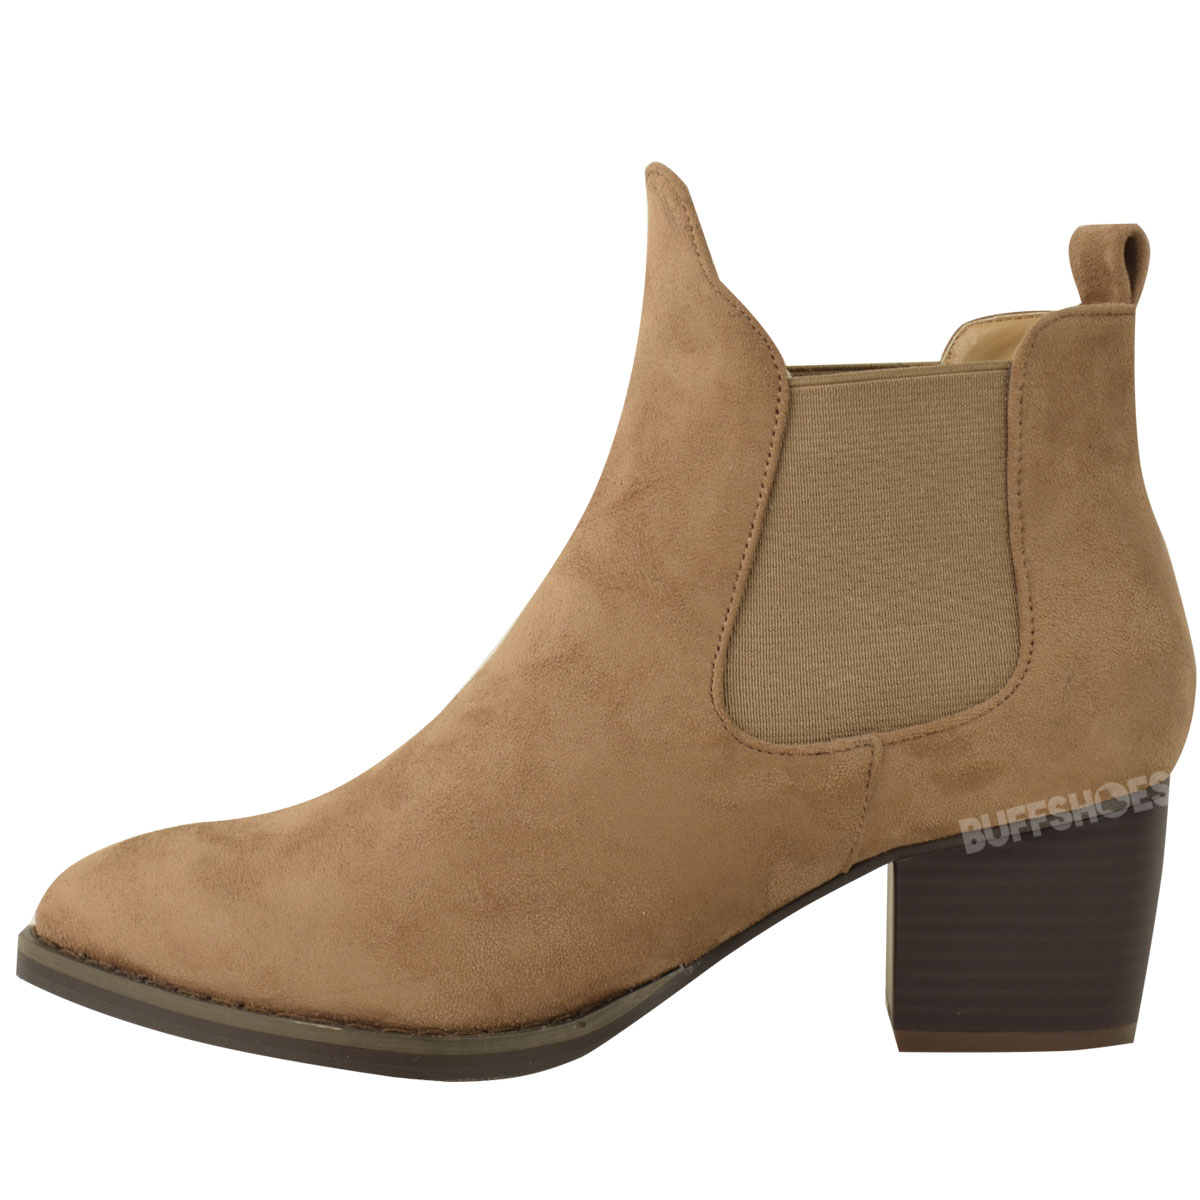 Fantastic Office Bramble Chelsea Boots $100 Liked On Polyvore Featuring Shoes, Boots, Ankle Booties, Ankle Boots, Brown Leather, Women, Short Boots, Leather Chelsea Boots, Brown Leather Boots And Leather Bootie